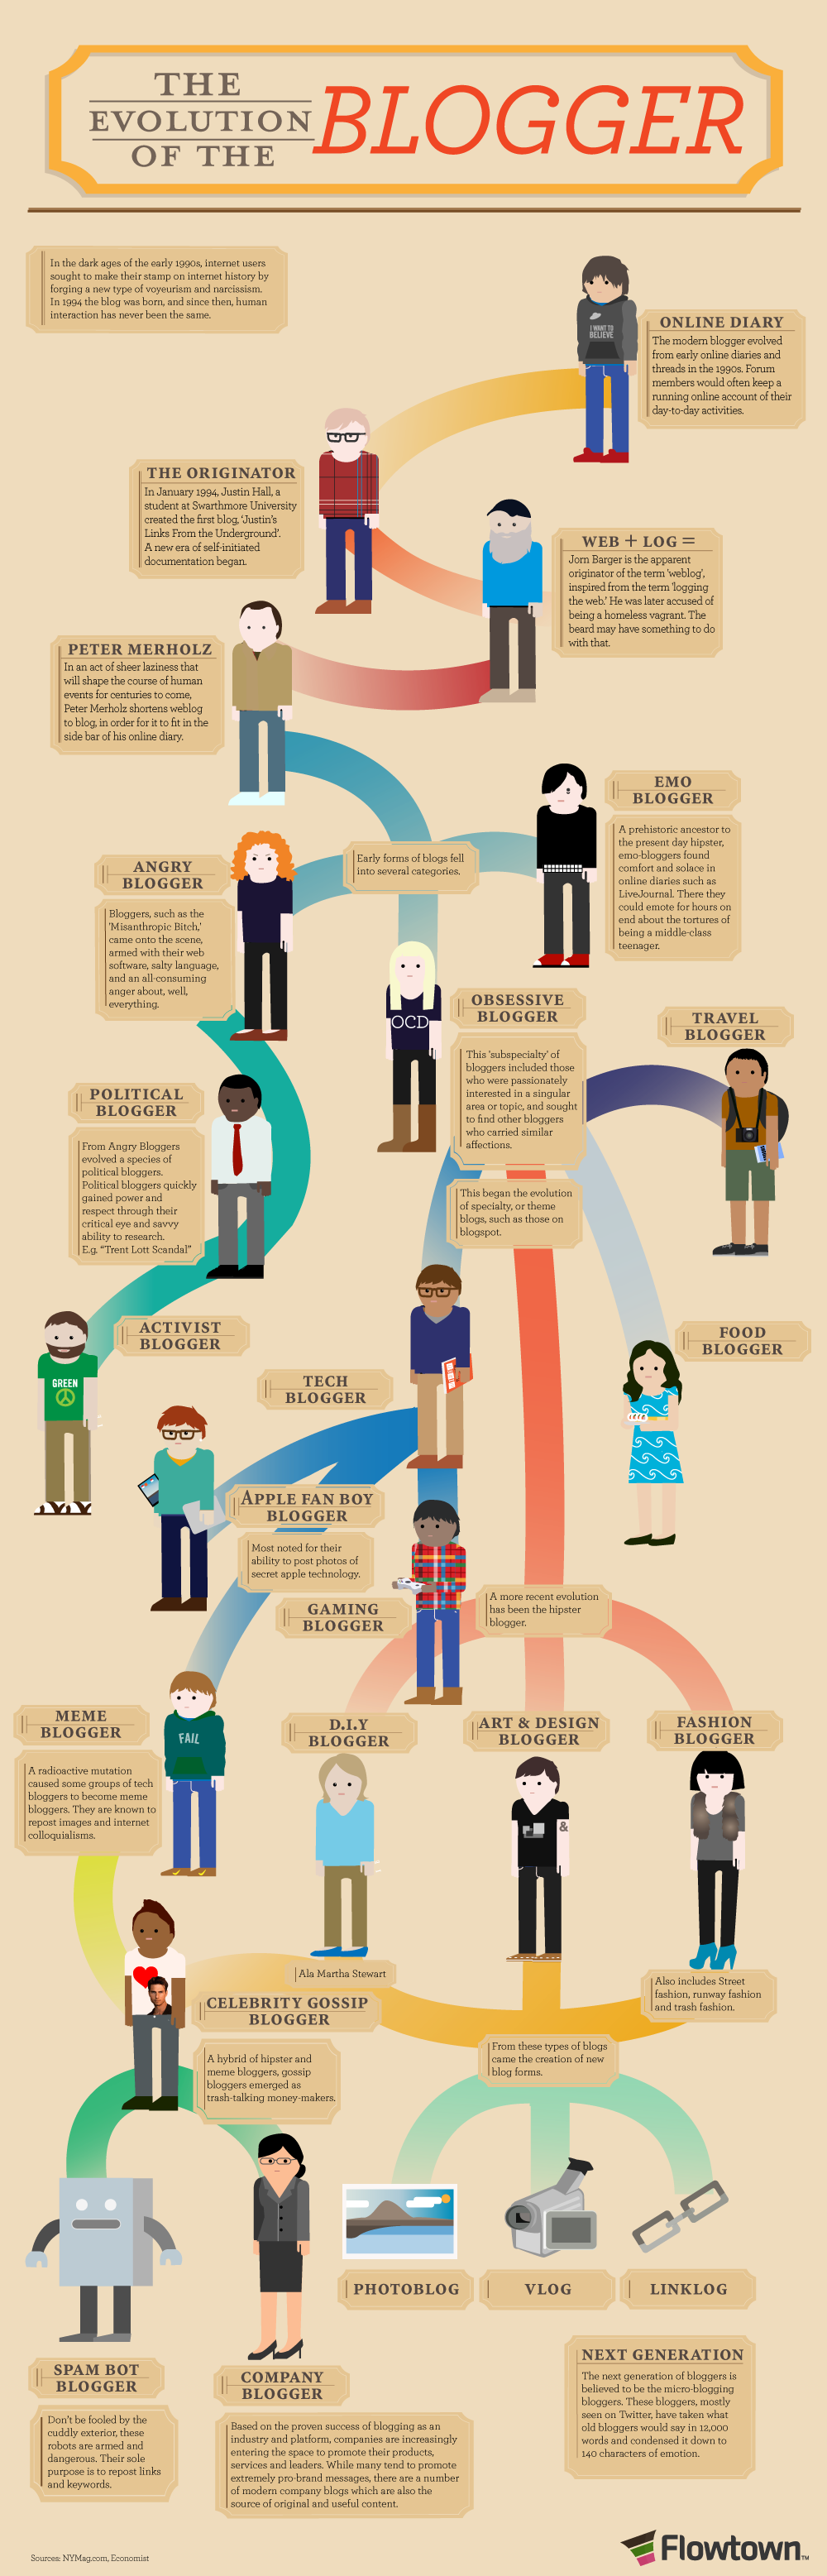 Infographic of Evolution of Blogging